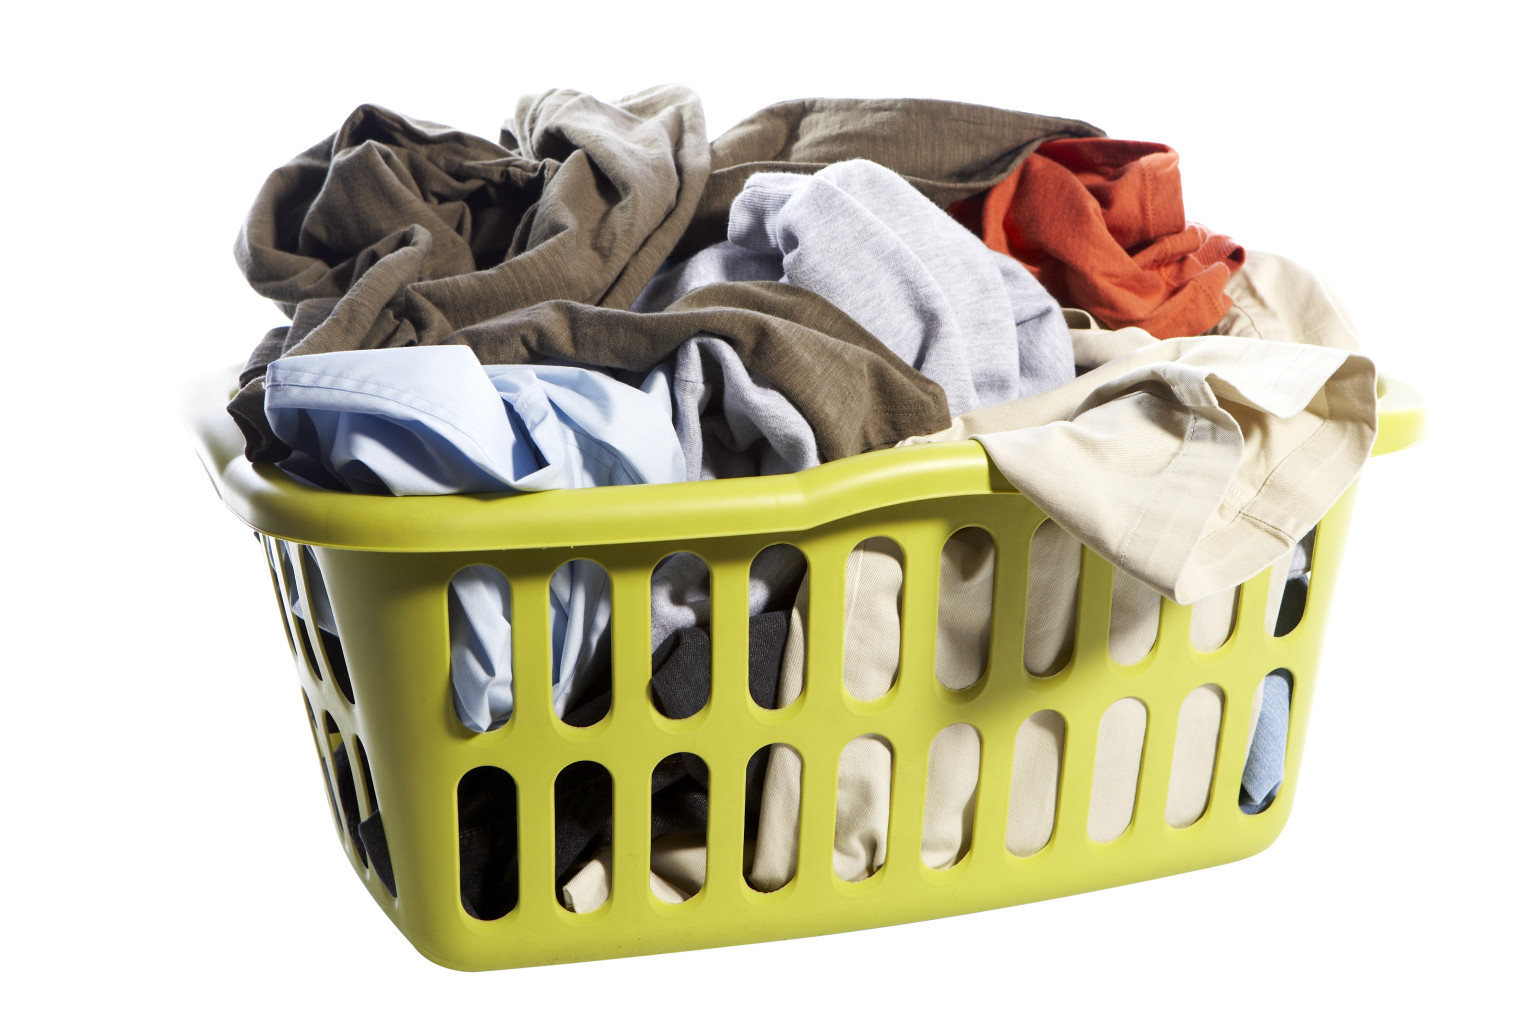 hight resolution of put clothes in hamper clipart clothes in hamp